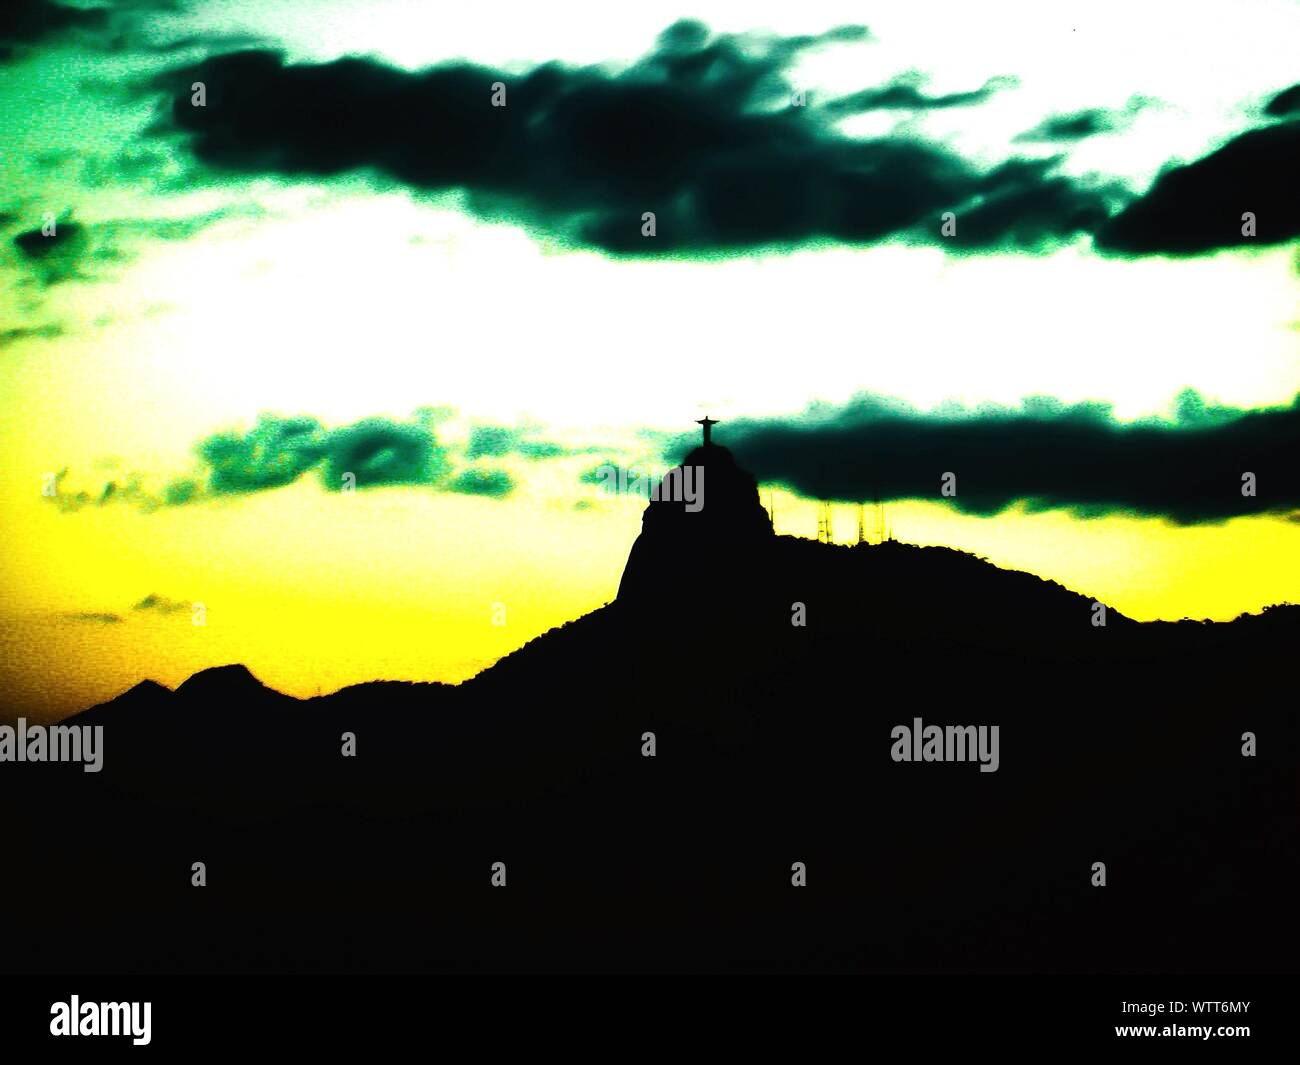 Low Angle View Of Silhouette Christ The Redeemer Statue On Top Of Mountain Against Cloudy Sky Stock Photo